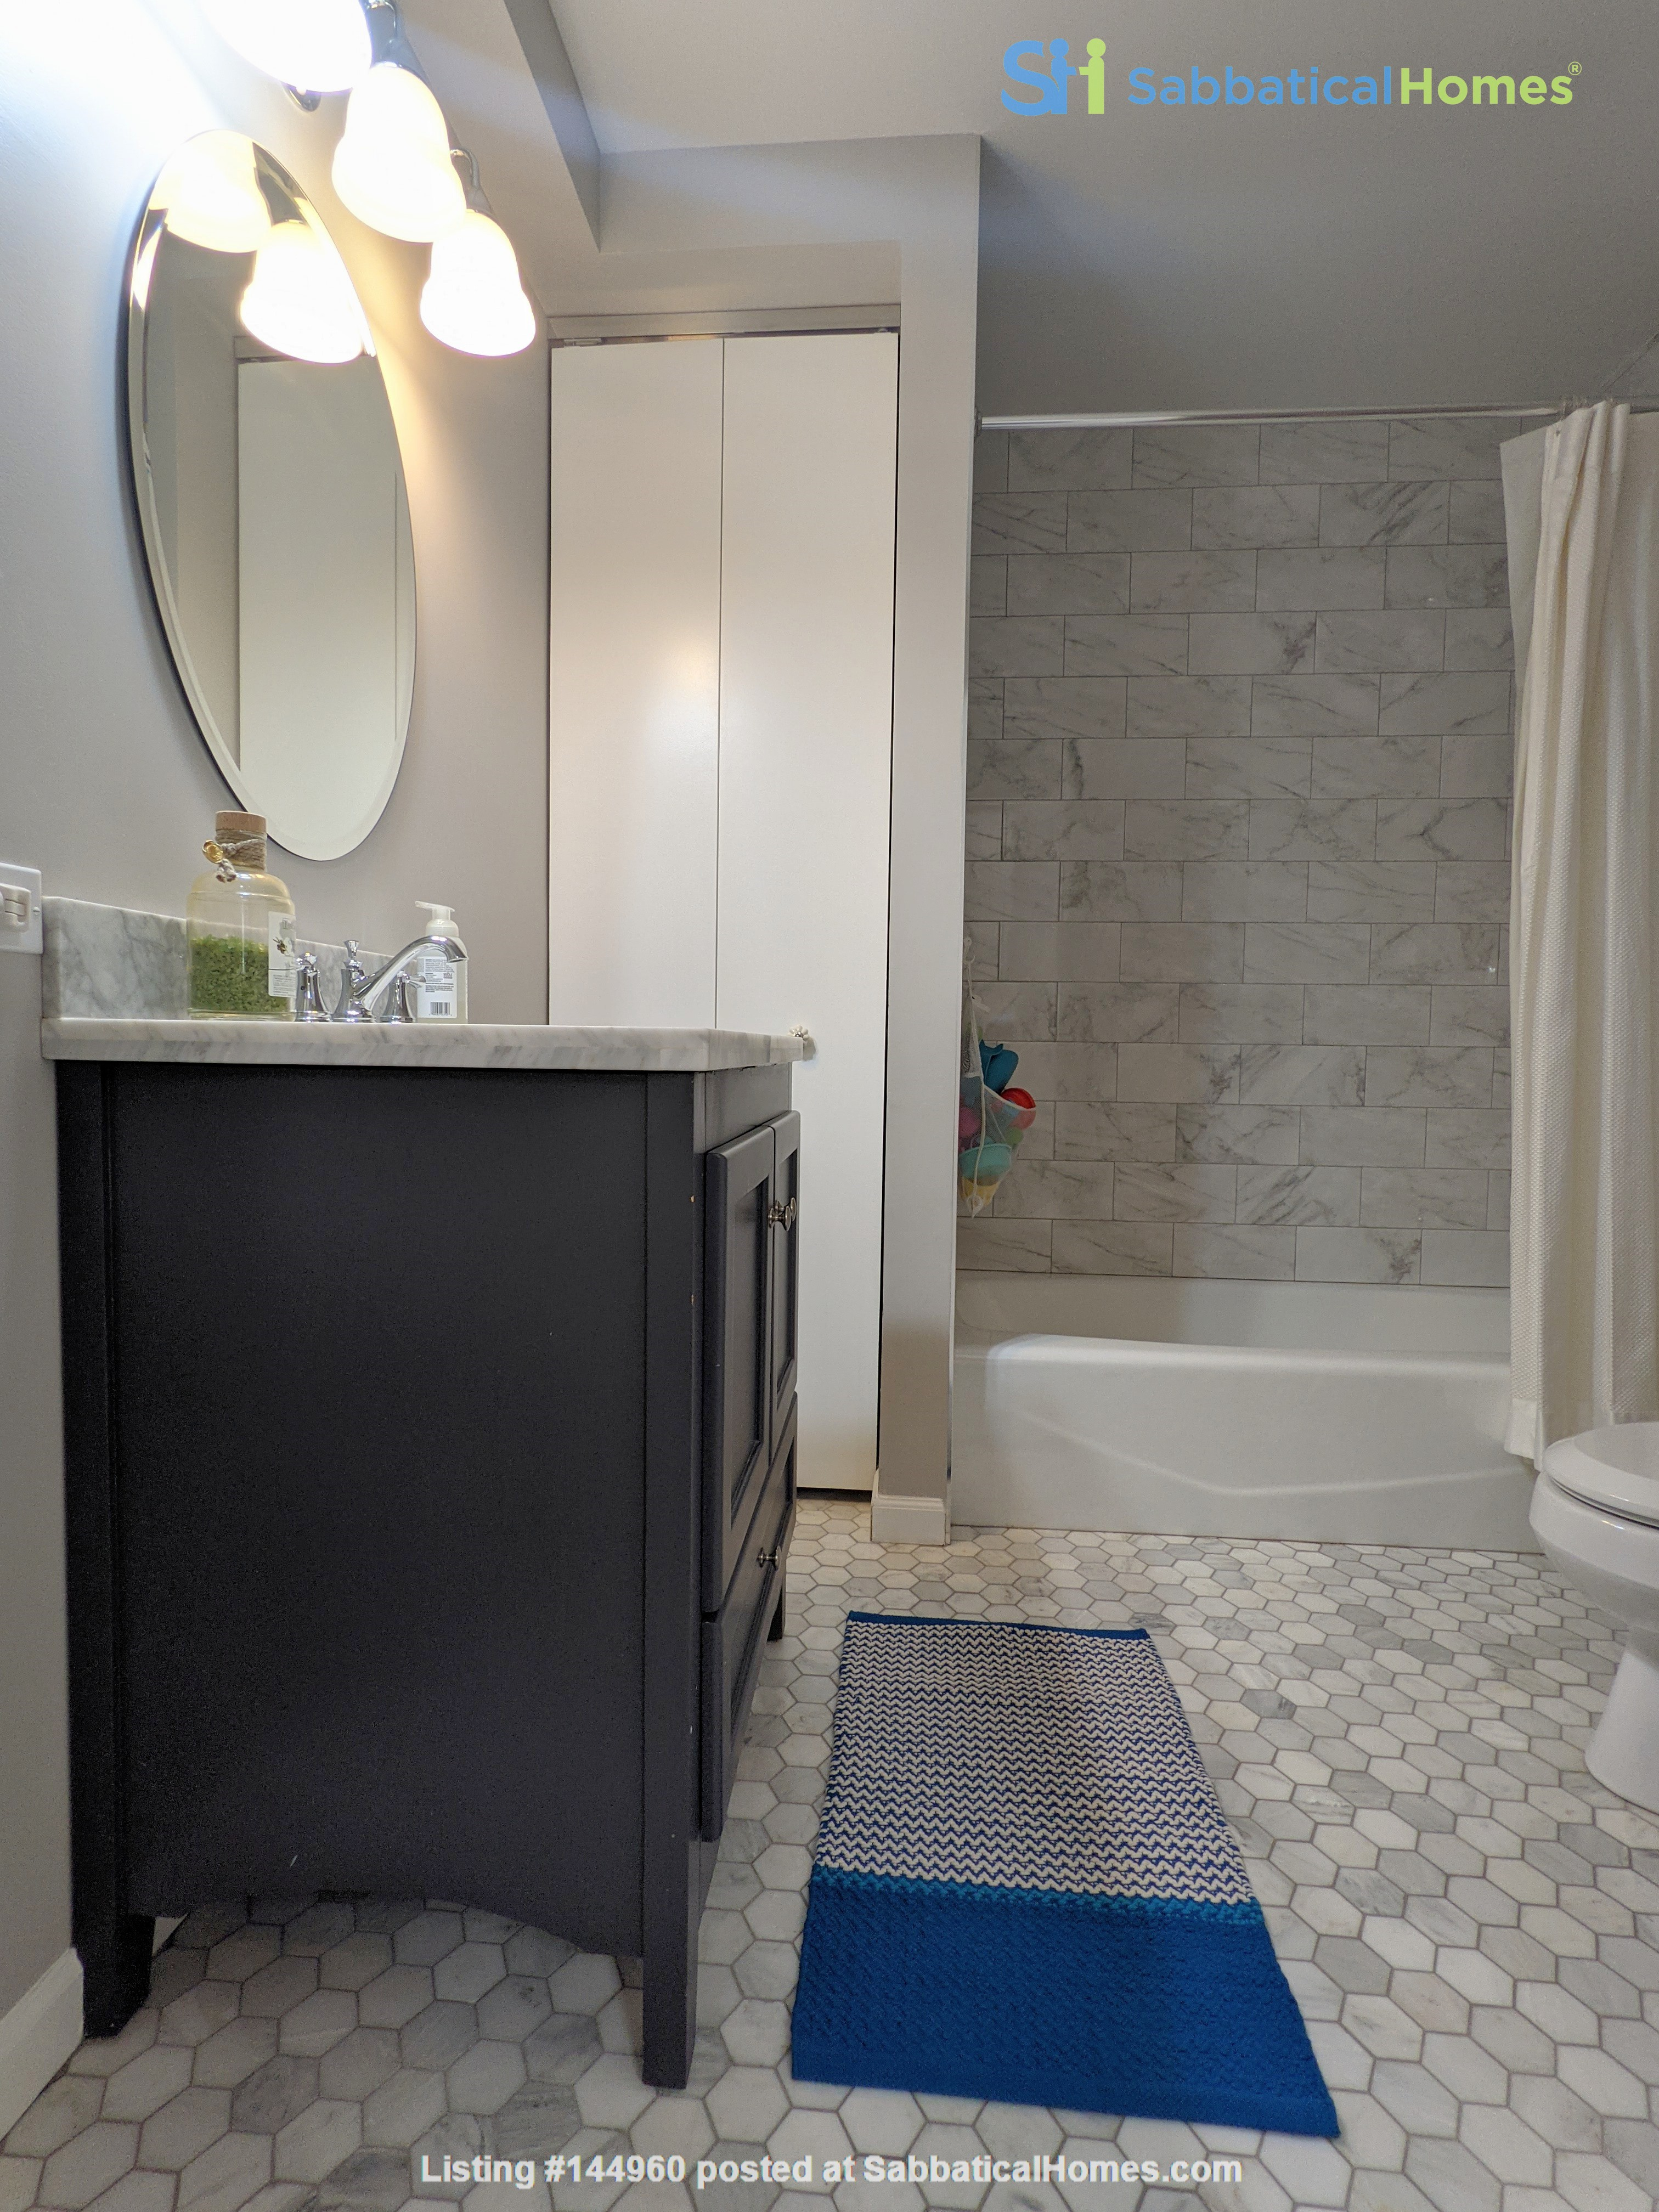 Spacious, fully furnished 3 bd/2.5 ba townhome in Lincoln Park Home Rental in Chicago, Illinois, United States 8